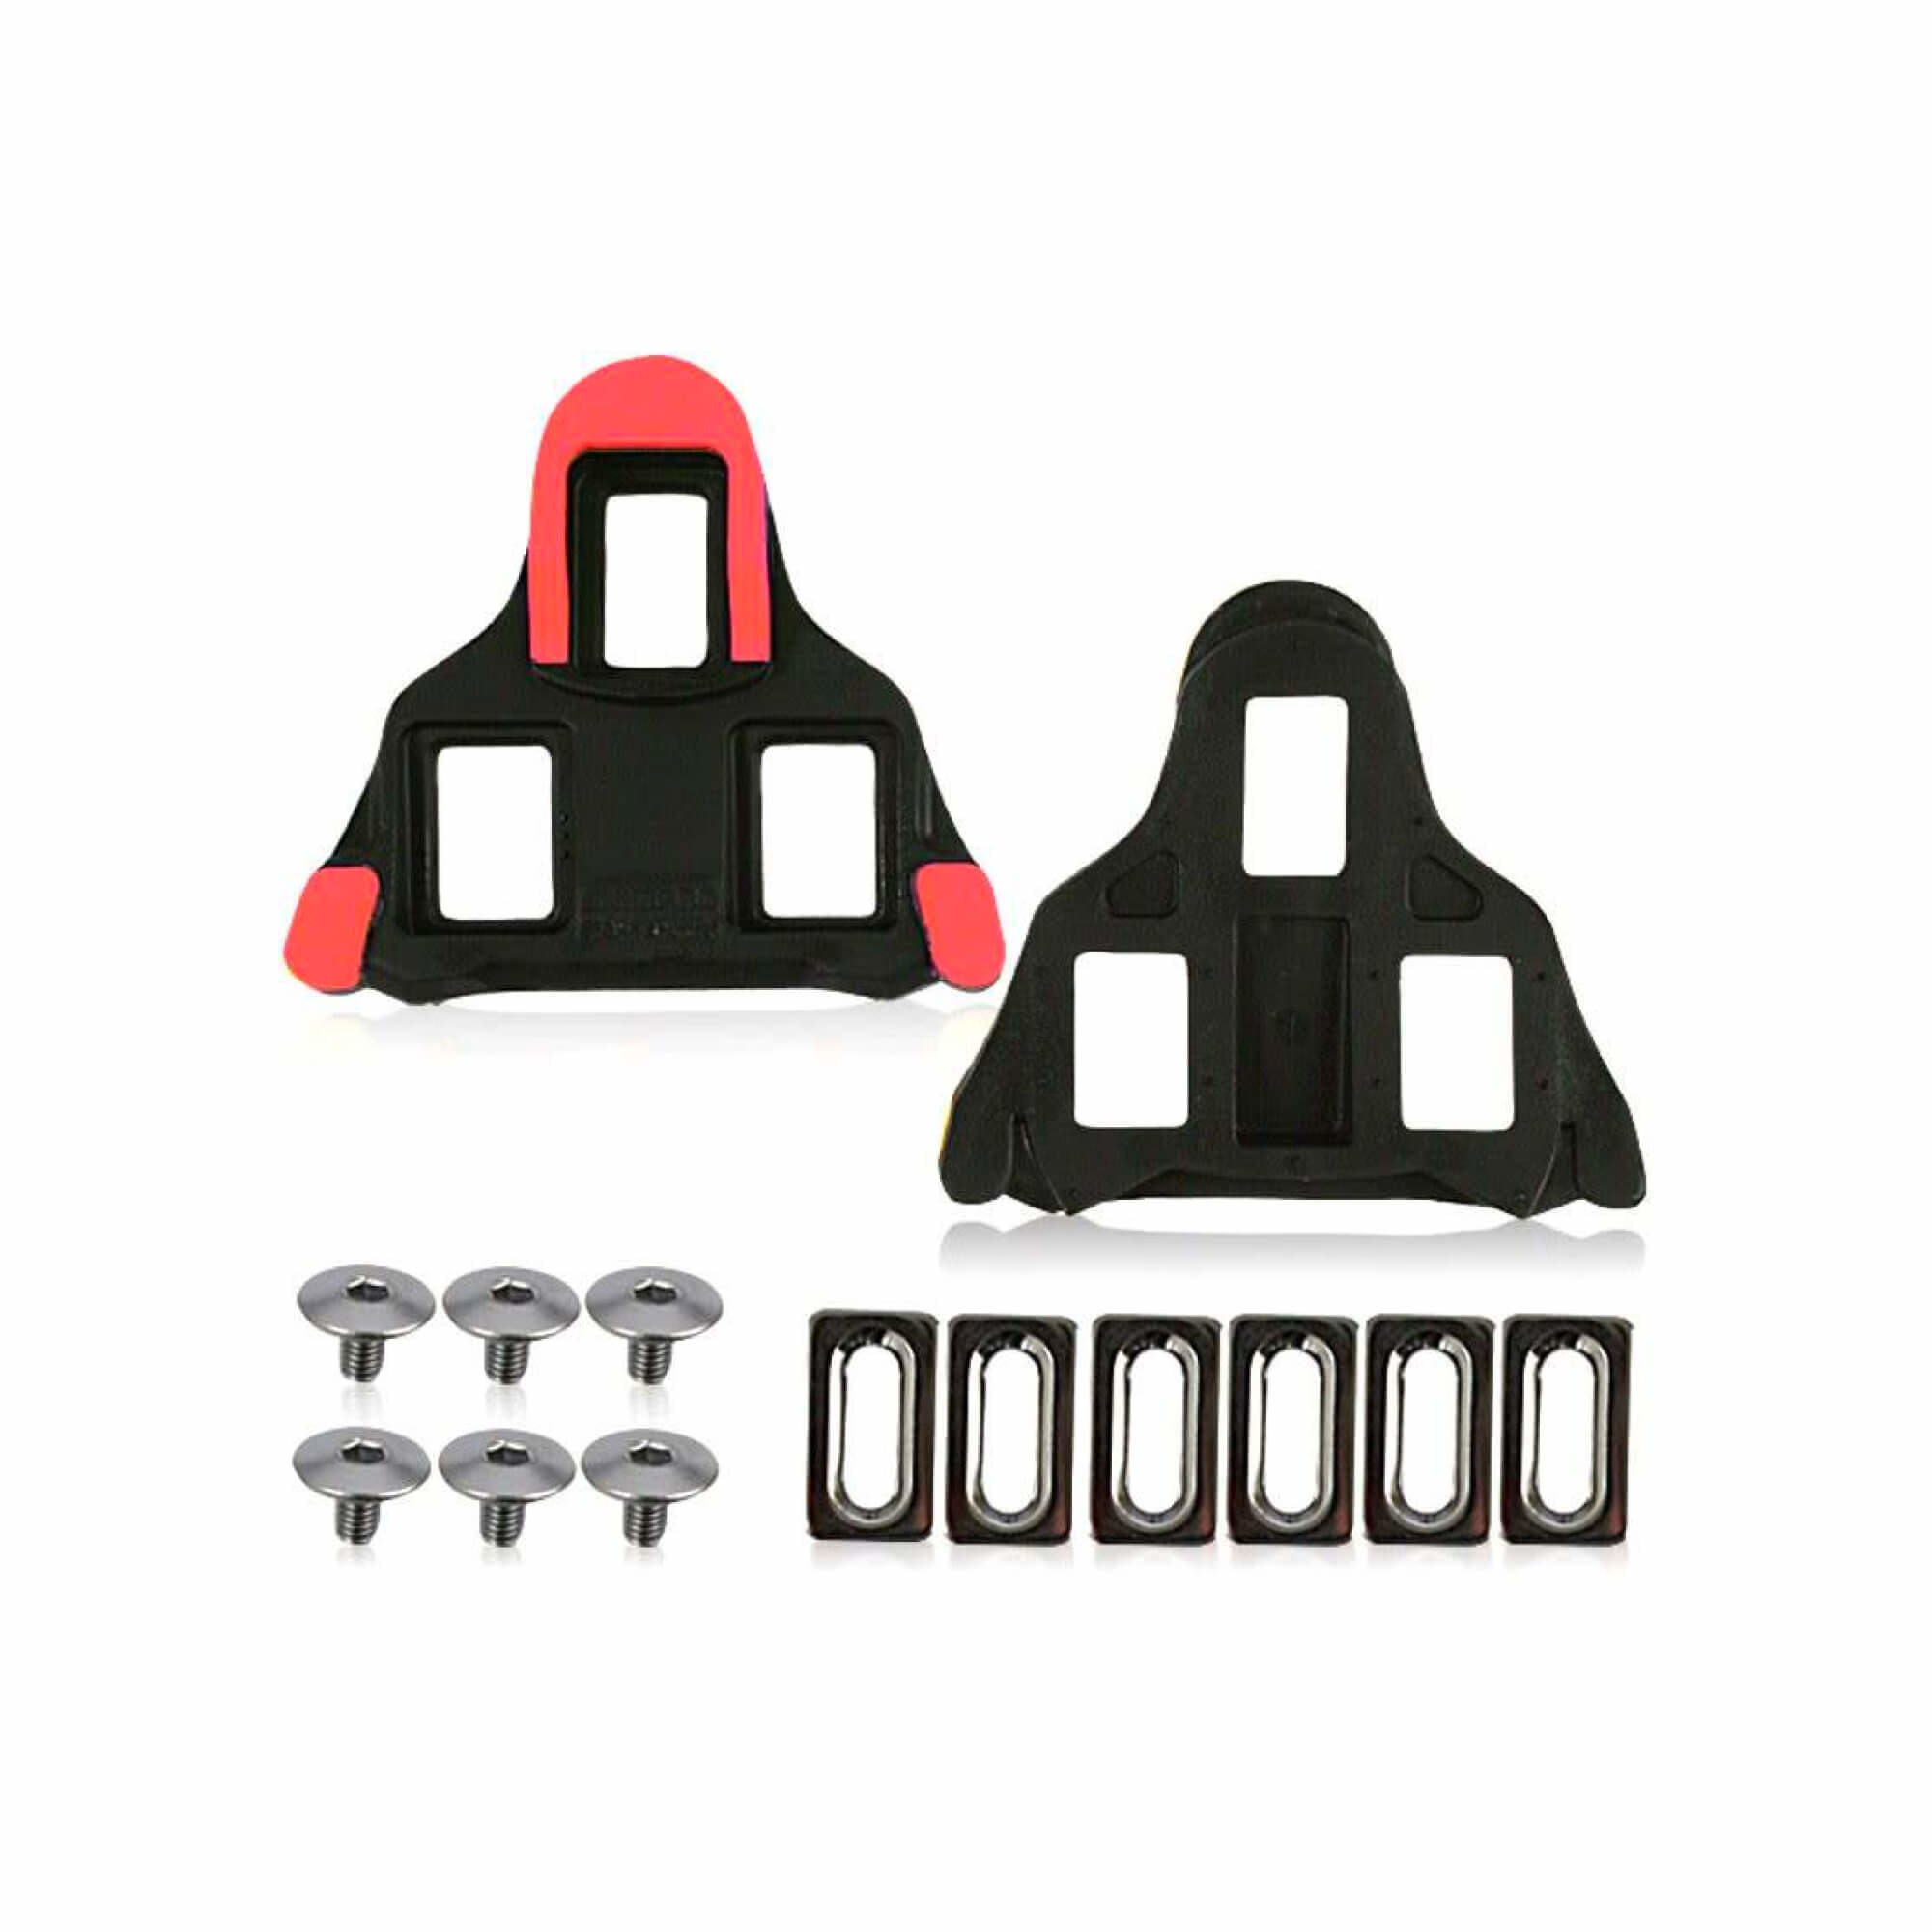 SM-SH10 Spd-Sl Cleat Set Fixed Mode - Red-1